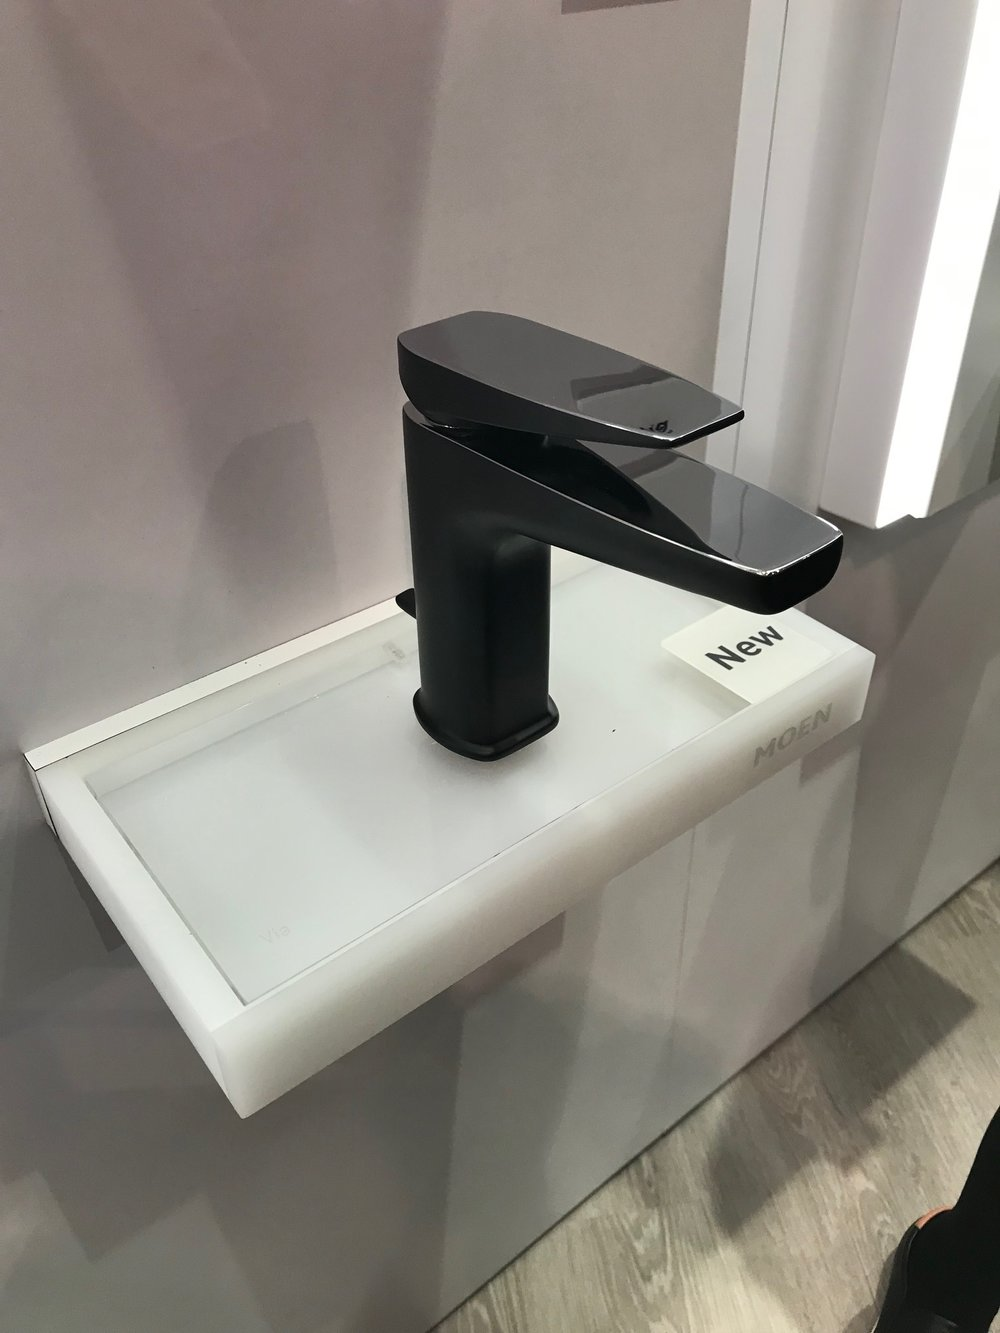 2019-02 Moen New Faucets - Matte Black and Chrome - Available Q3 (1).jpg